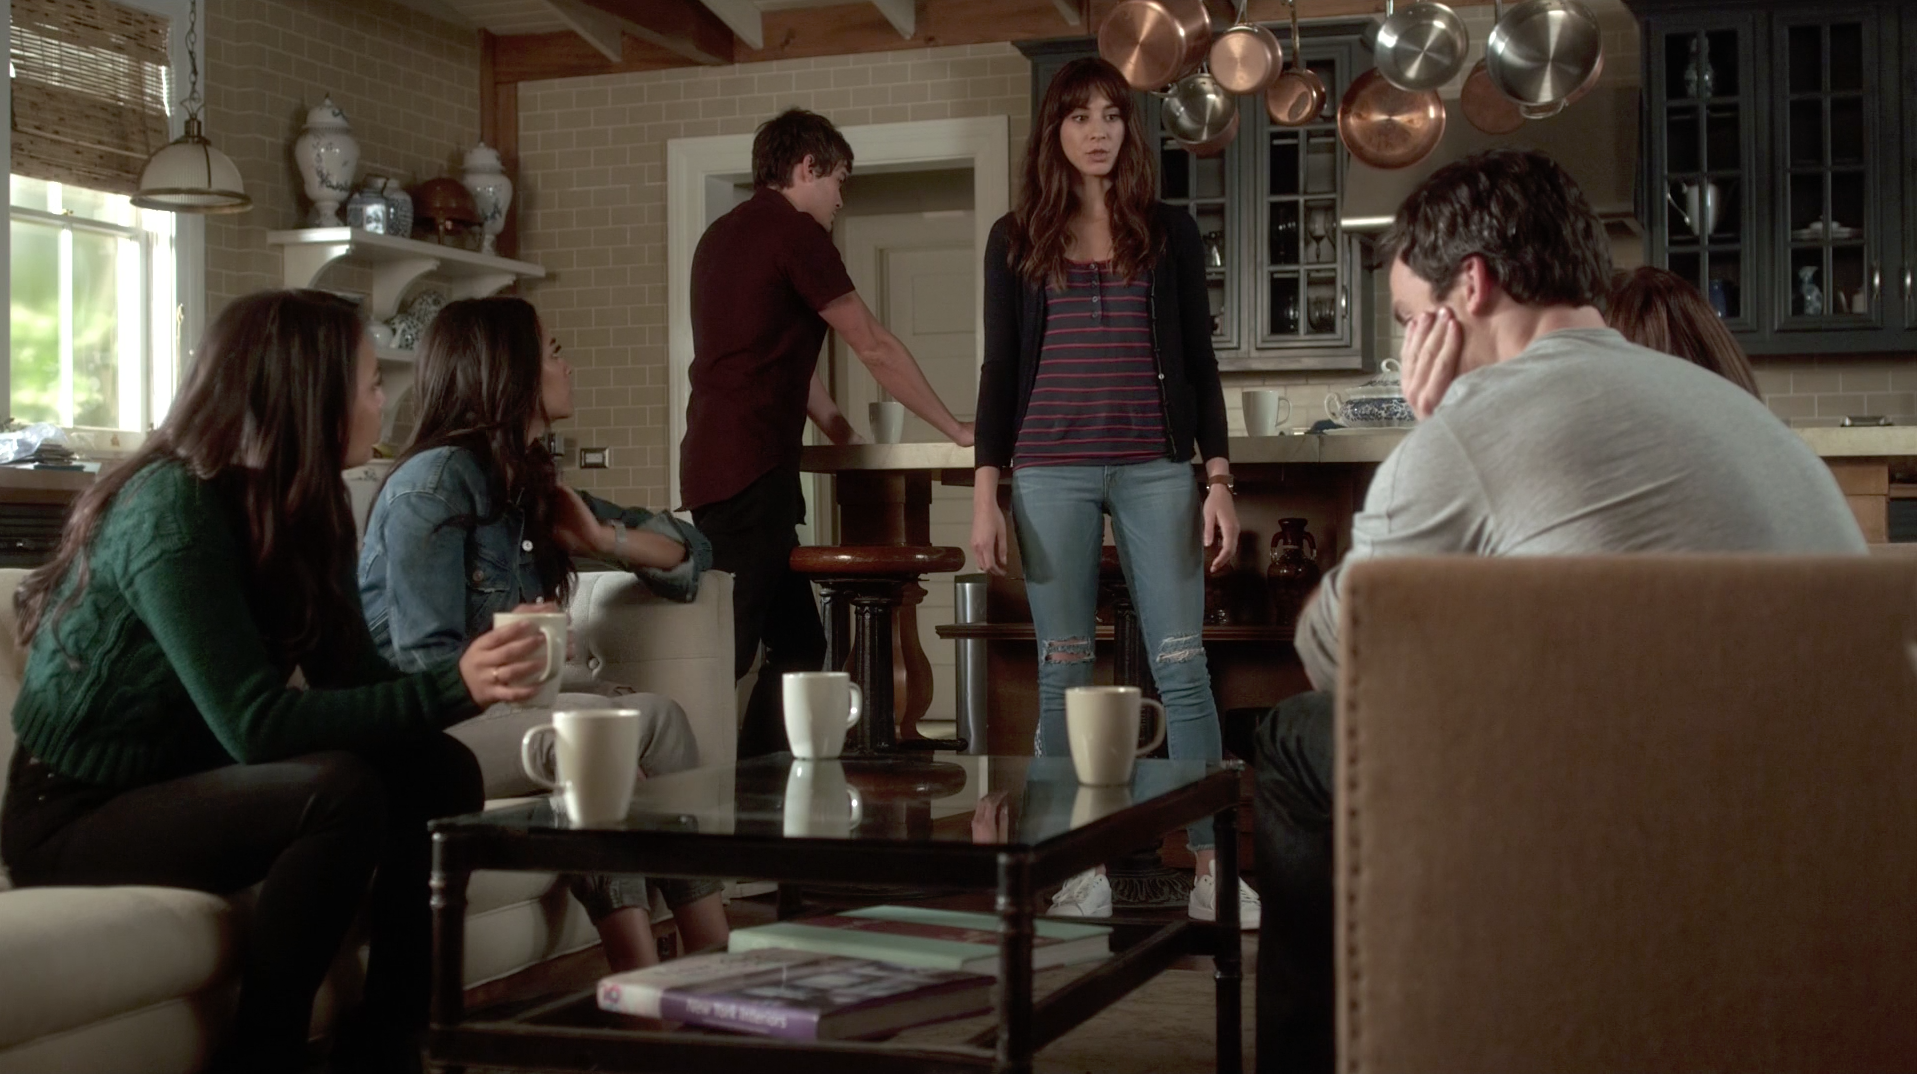 Back at the Hastings House, he's taken the jacket off, but he's still wearing the same jeans and maroon shirt.